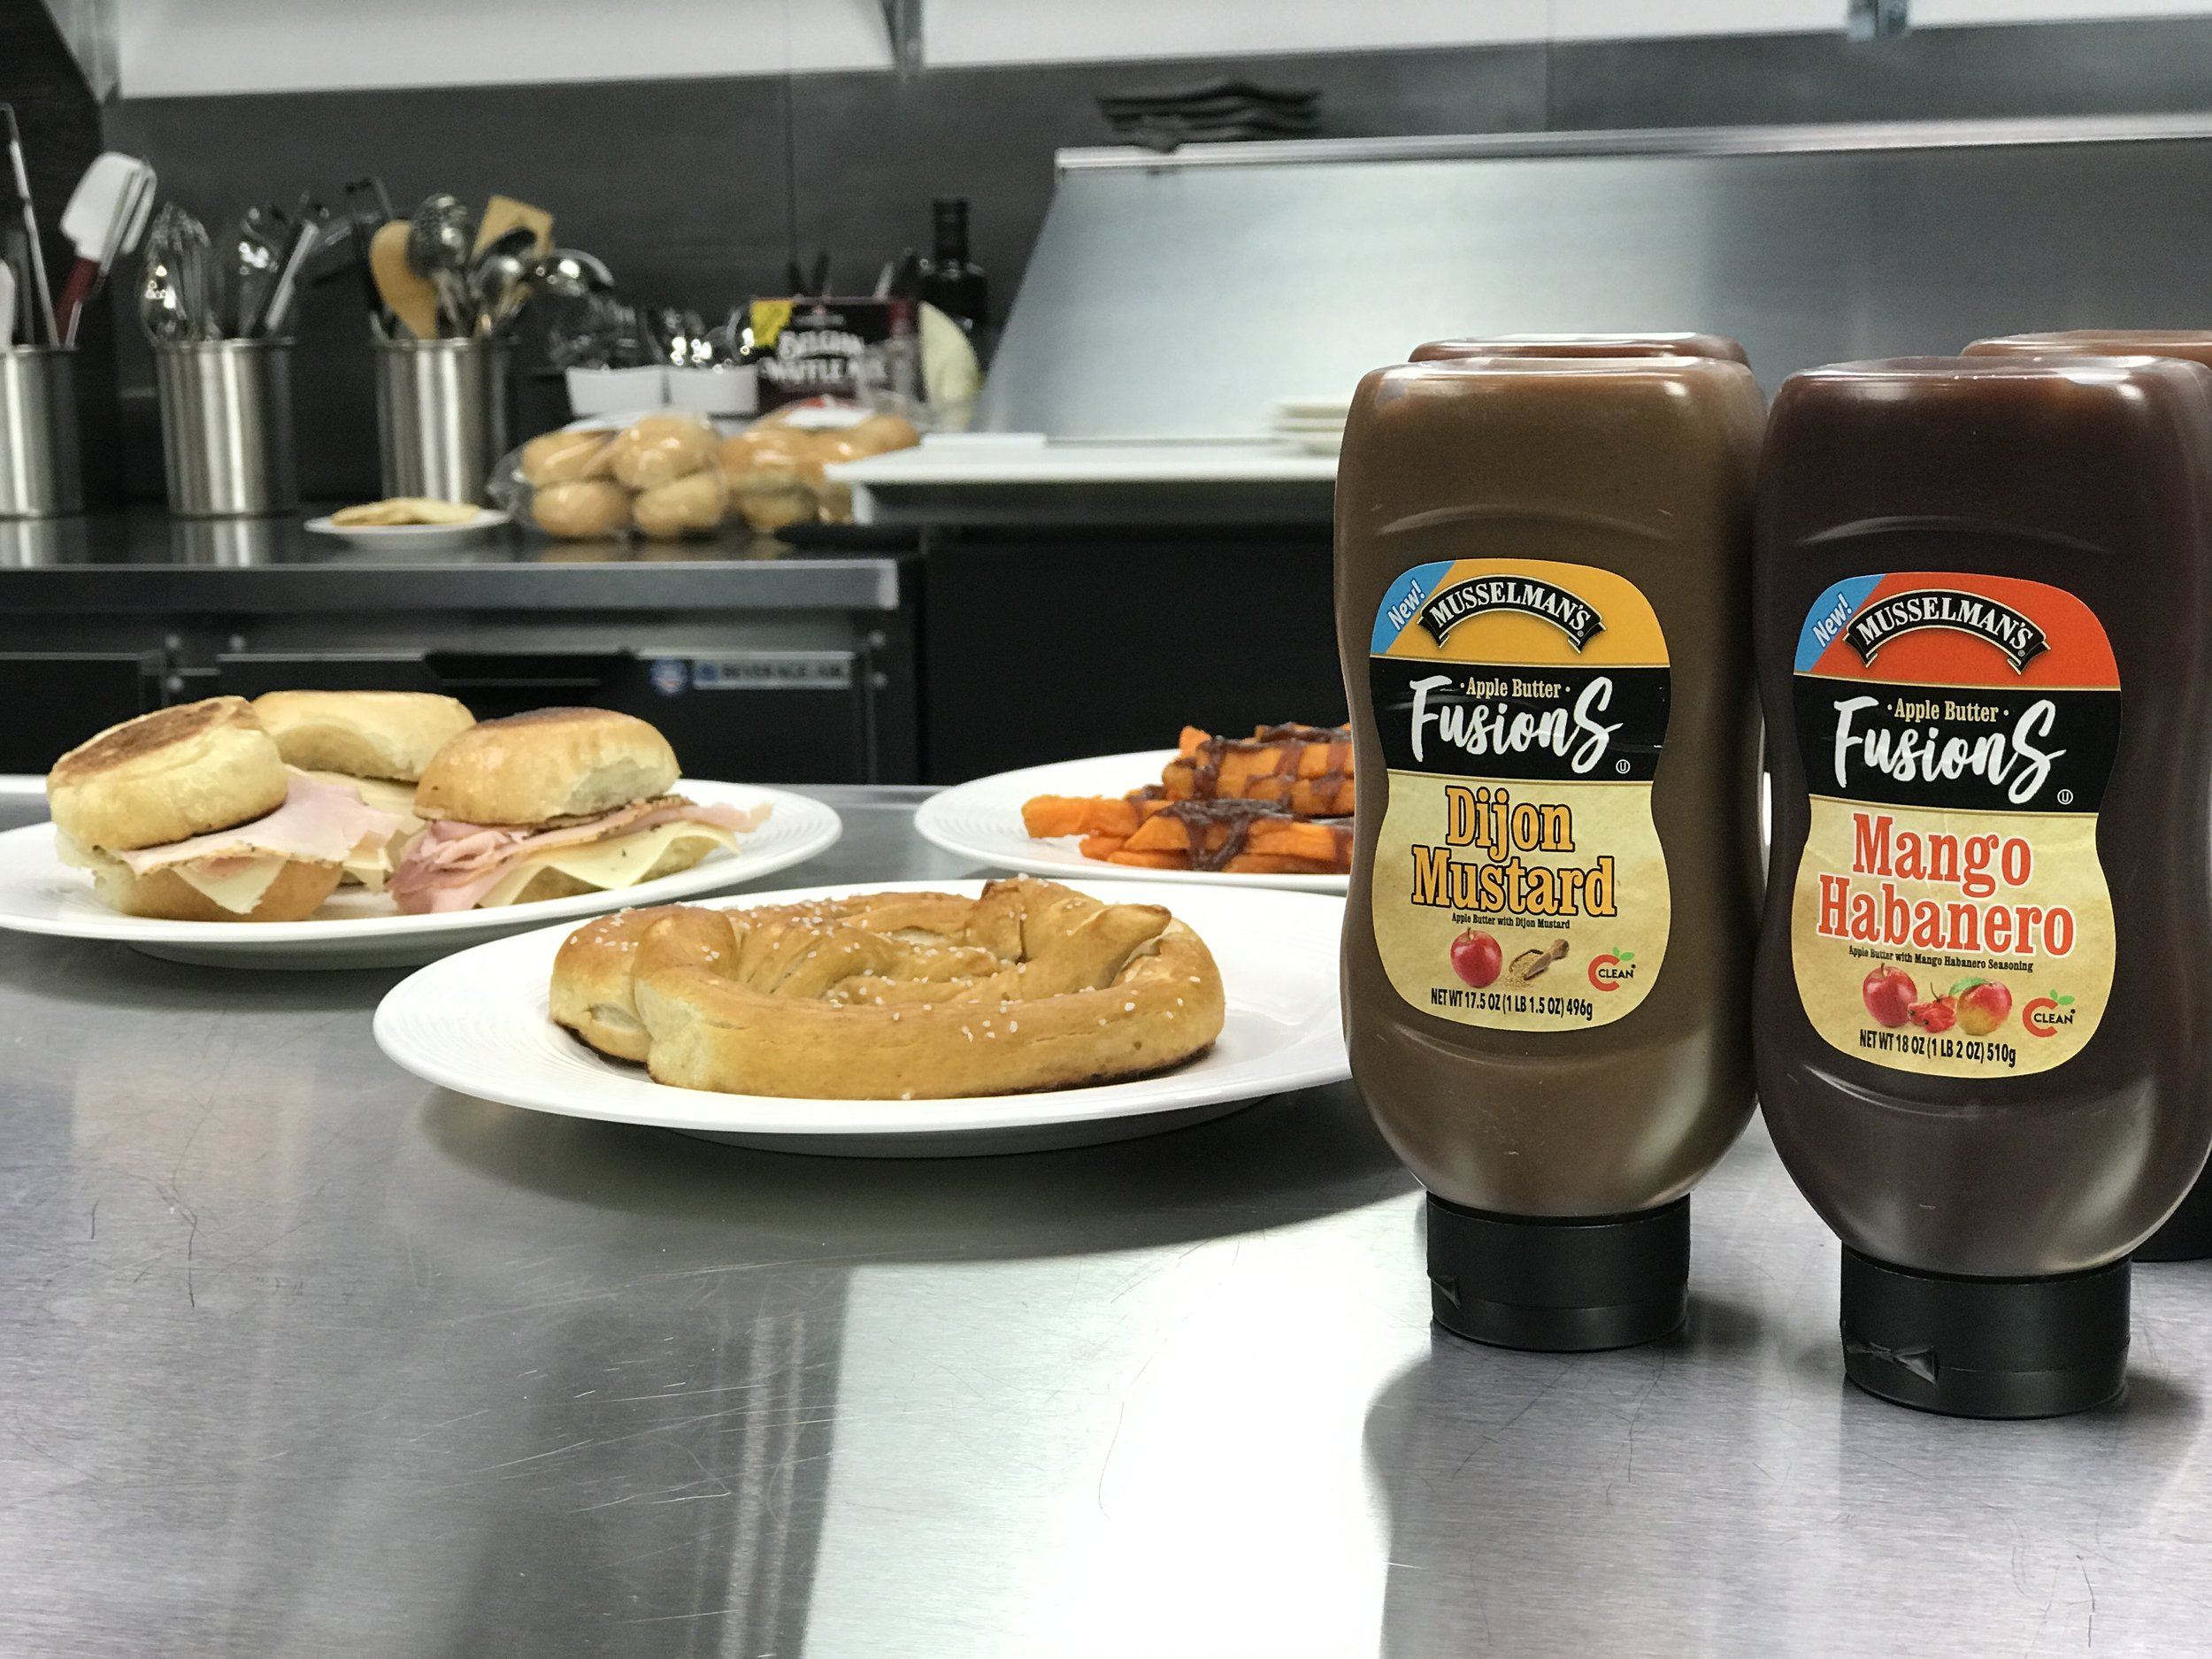 Musselman's Apple Butter Dijon Mustard and Mango Habanero Fusions |   Foodable Network